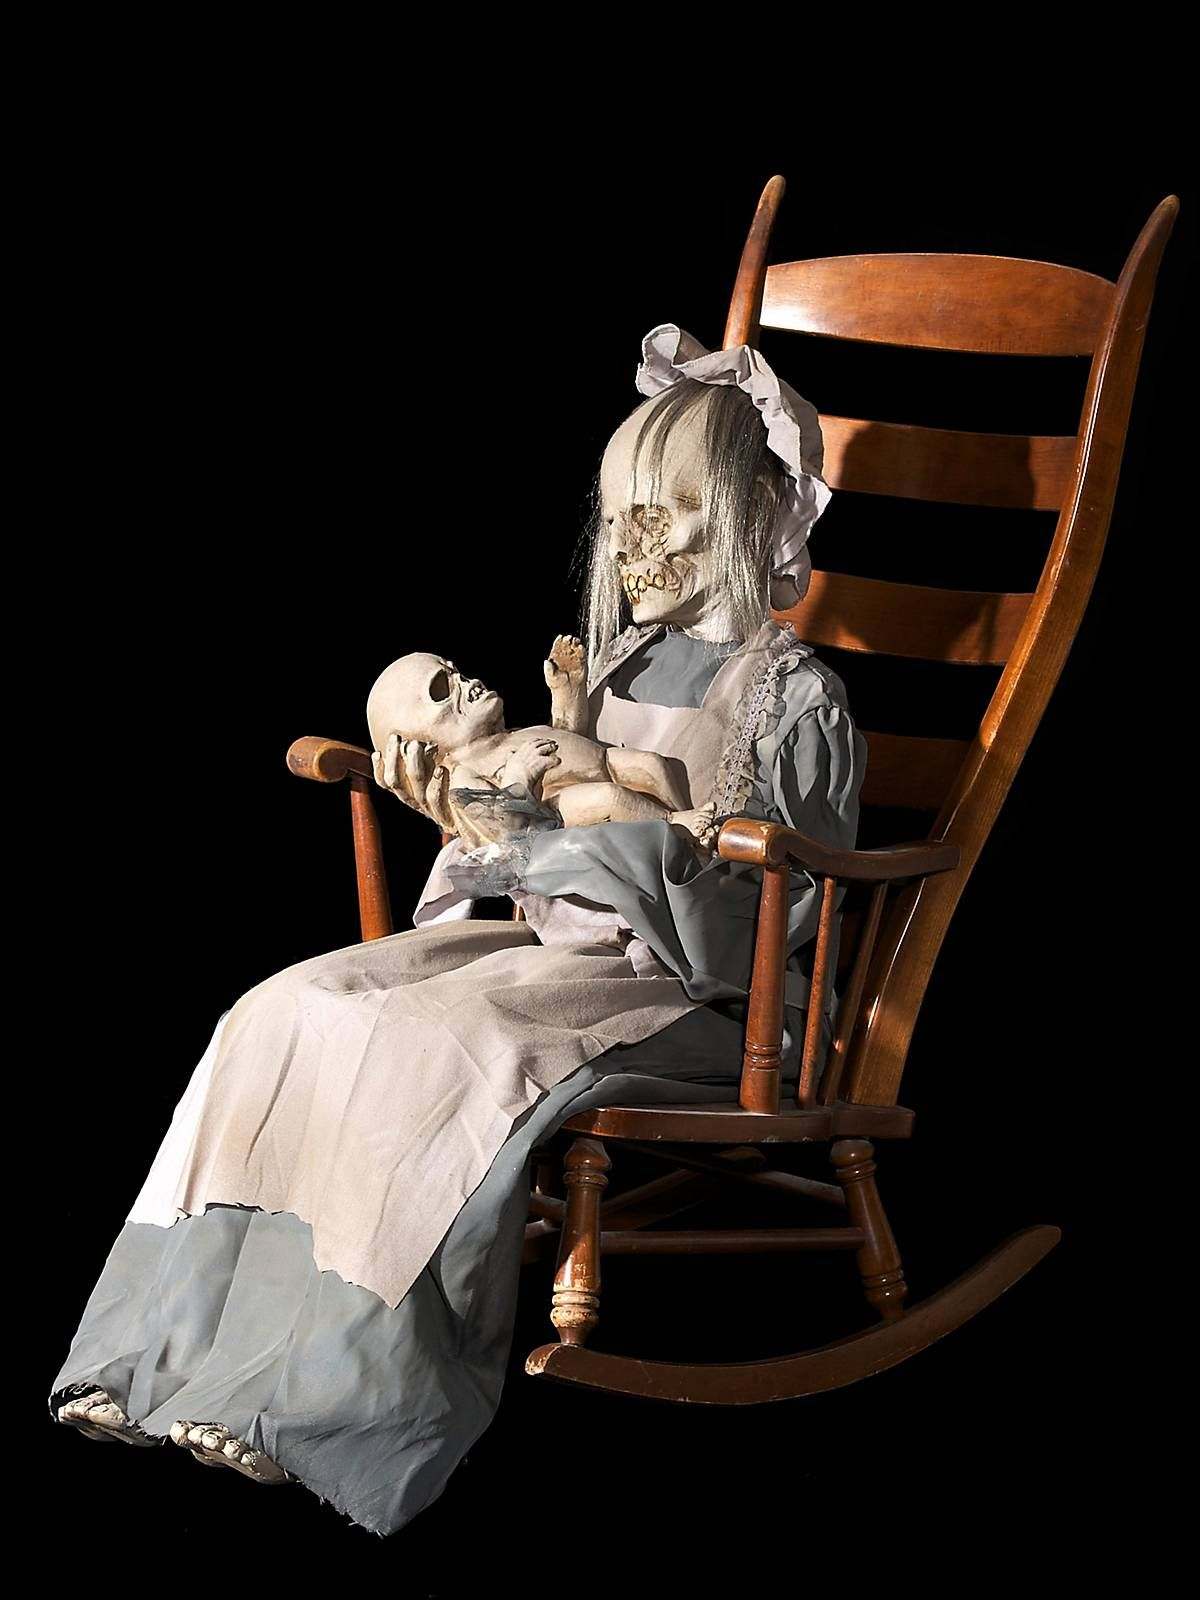 Lullaby Dead Woman and Baby Prop Animated/LightUp at